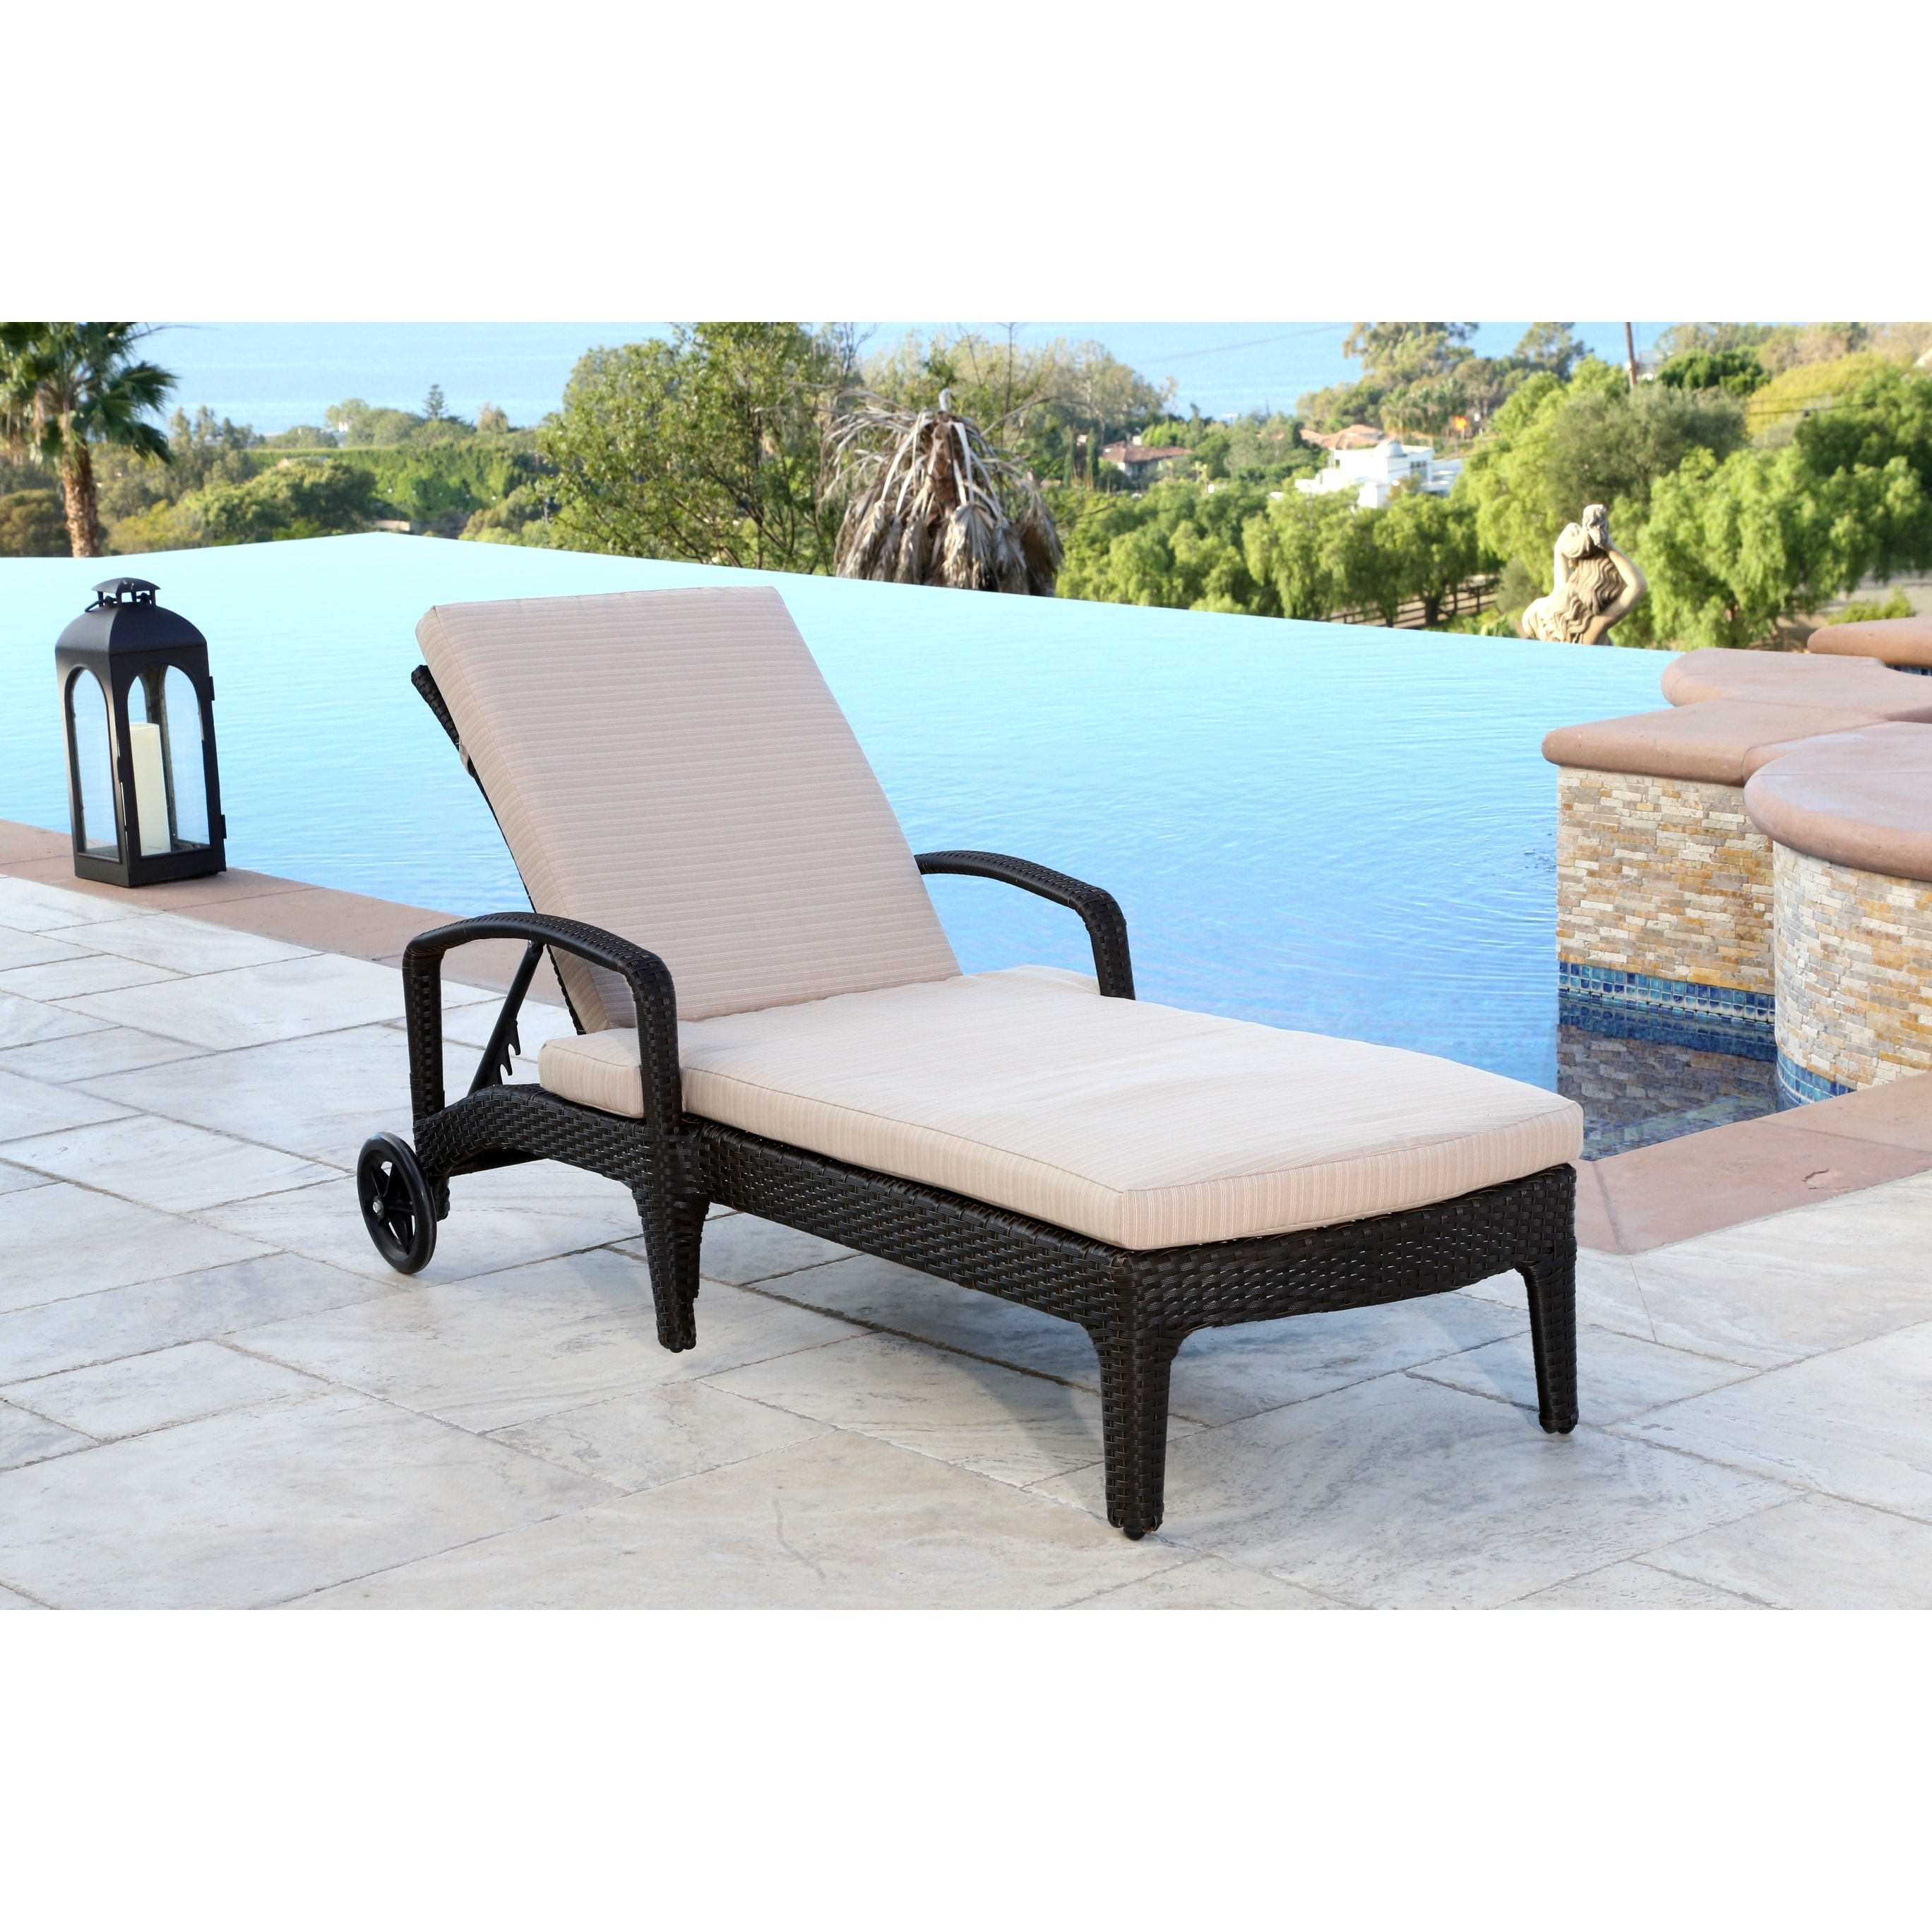 Abbyson Newport Outdoor Wicker Chaise Lounge – Free Shipping Today With Regard To Popular Newport Chaise Lounge Chairs (View 11 of 15)